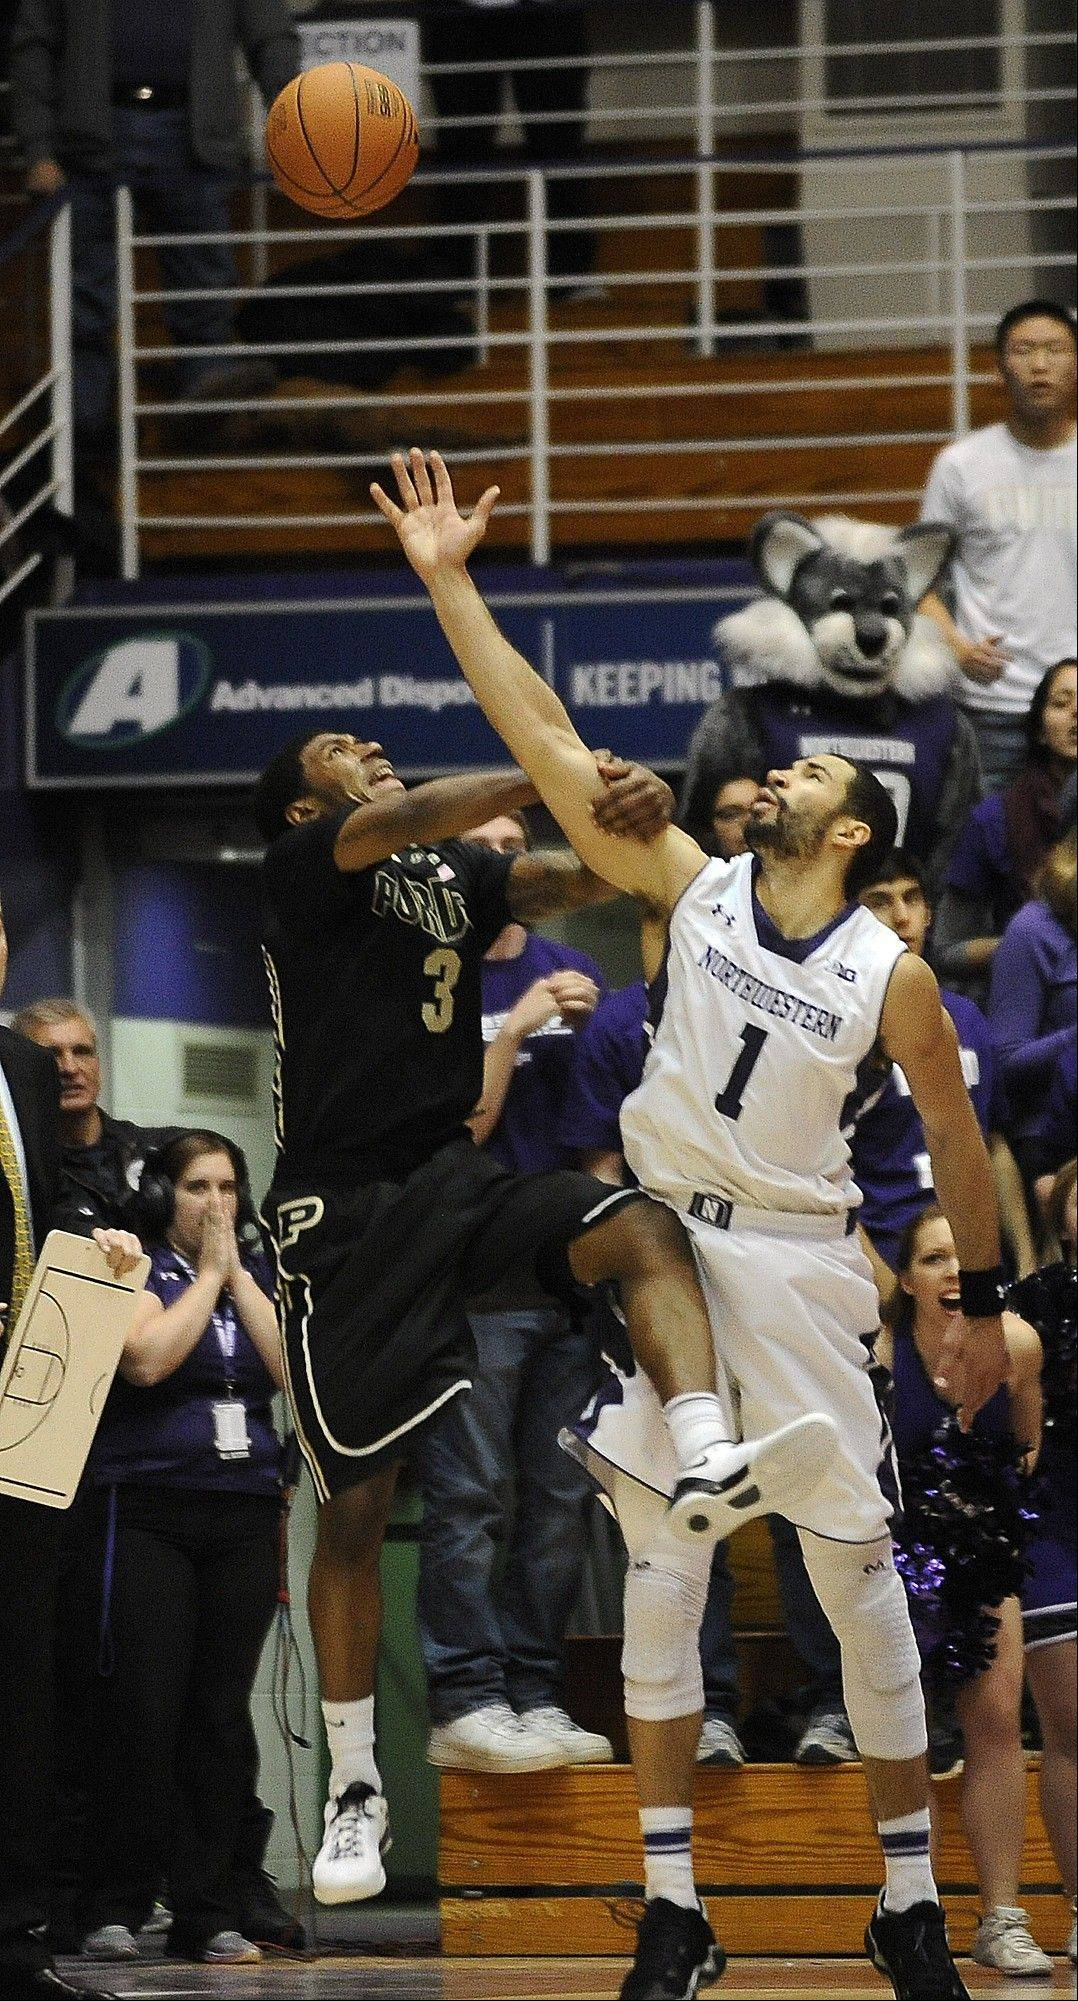 Associated PressNorthwestern guard/forward Drew Crawford (1) blocks a final second shot by Purdue guard Ronnie Johnson (3) at the end of an NCAA college basketball game Tuesday in Evanston. Northwestern won 63-60.